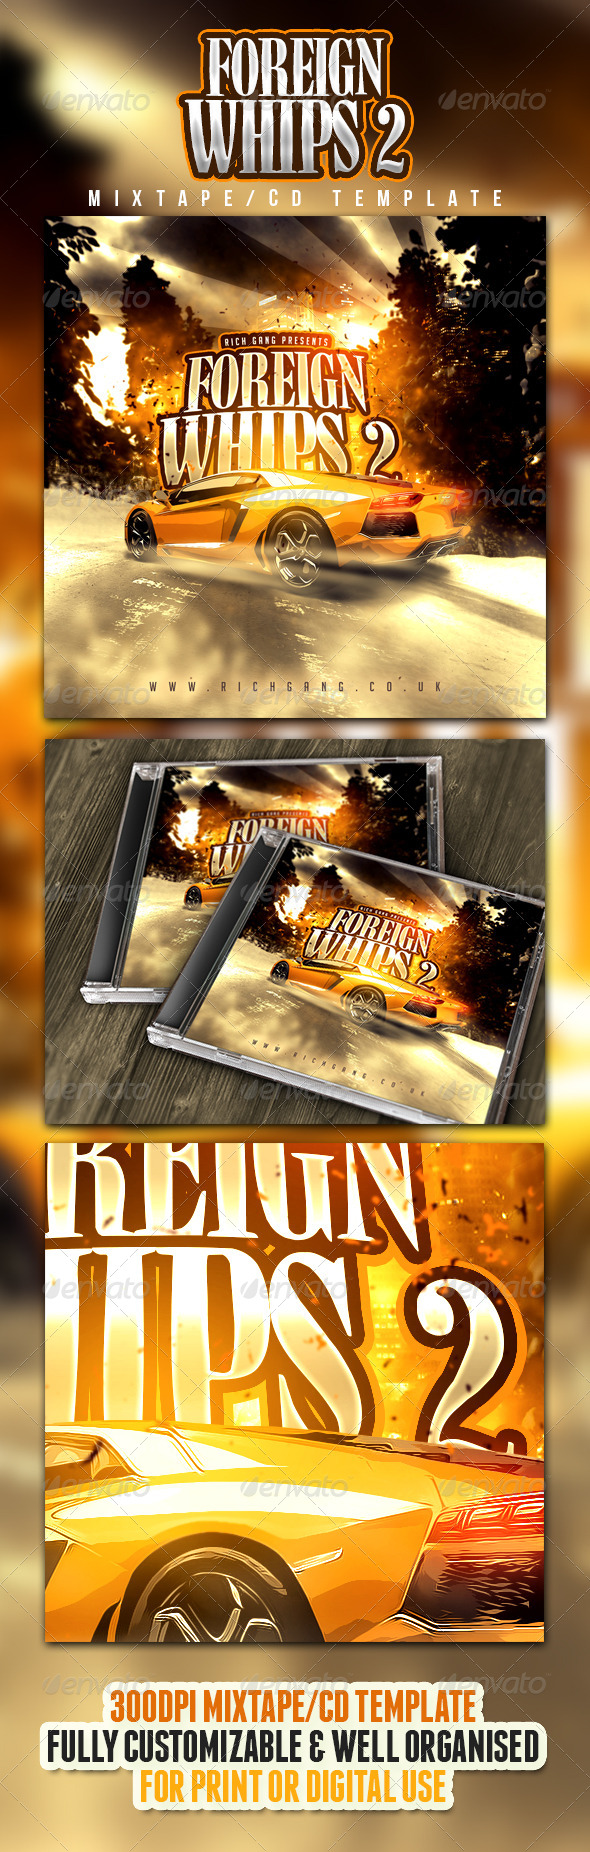 Rich Gang Hip Hop / Rap Mixtape CD Cover - CD & DVD artwork Print Templates